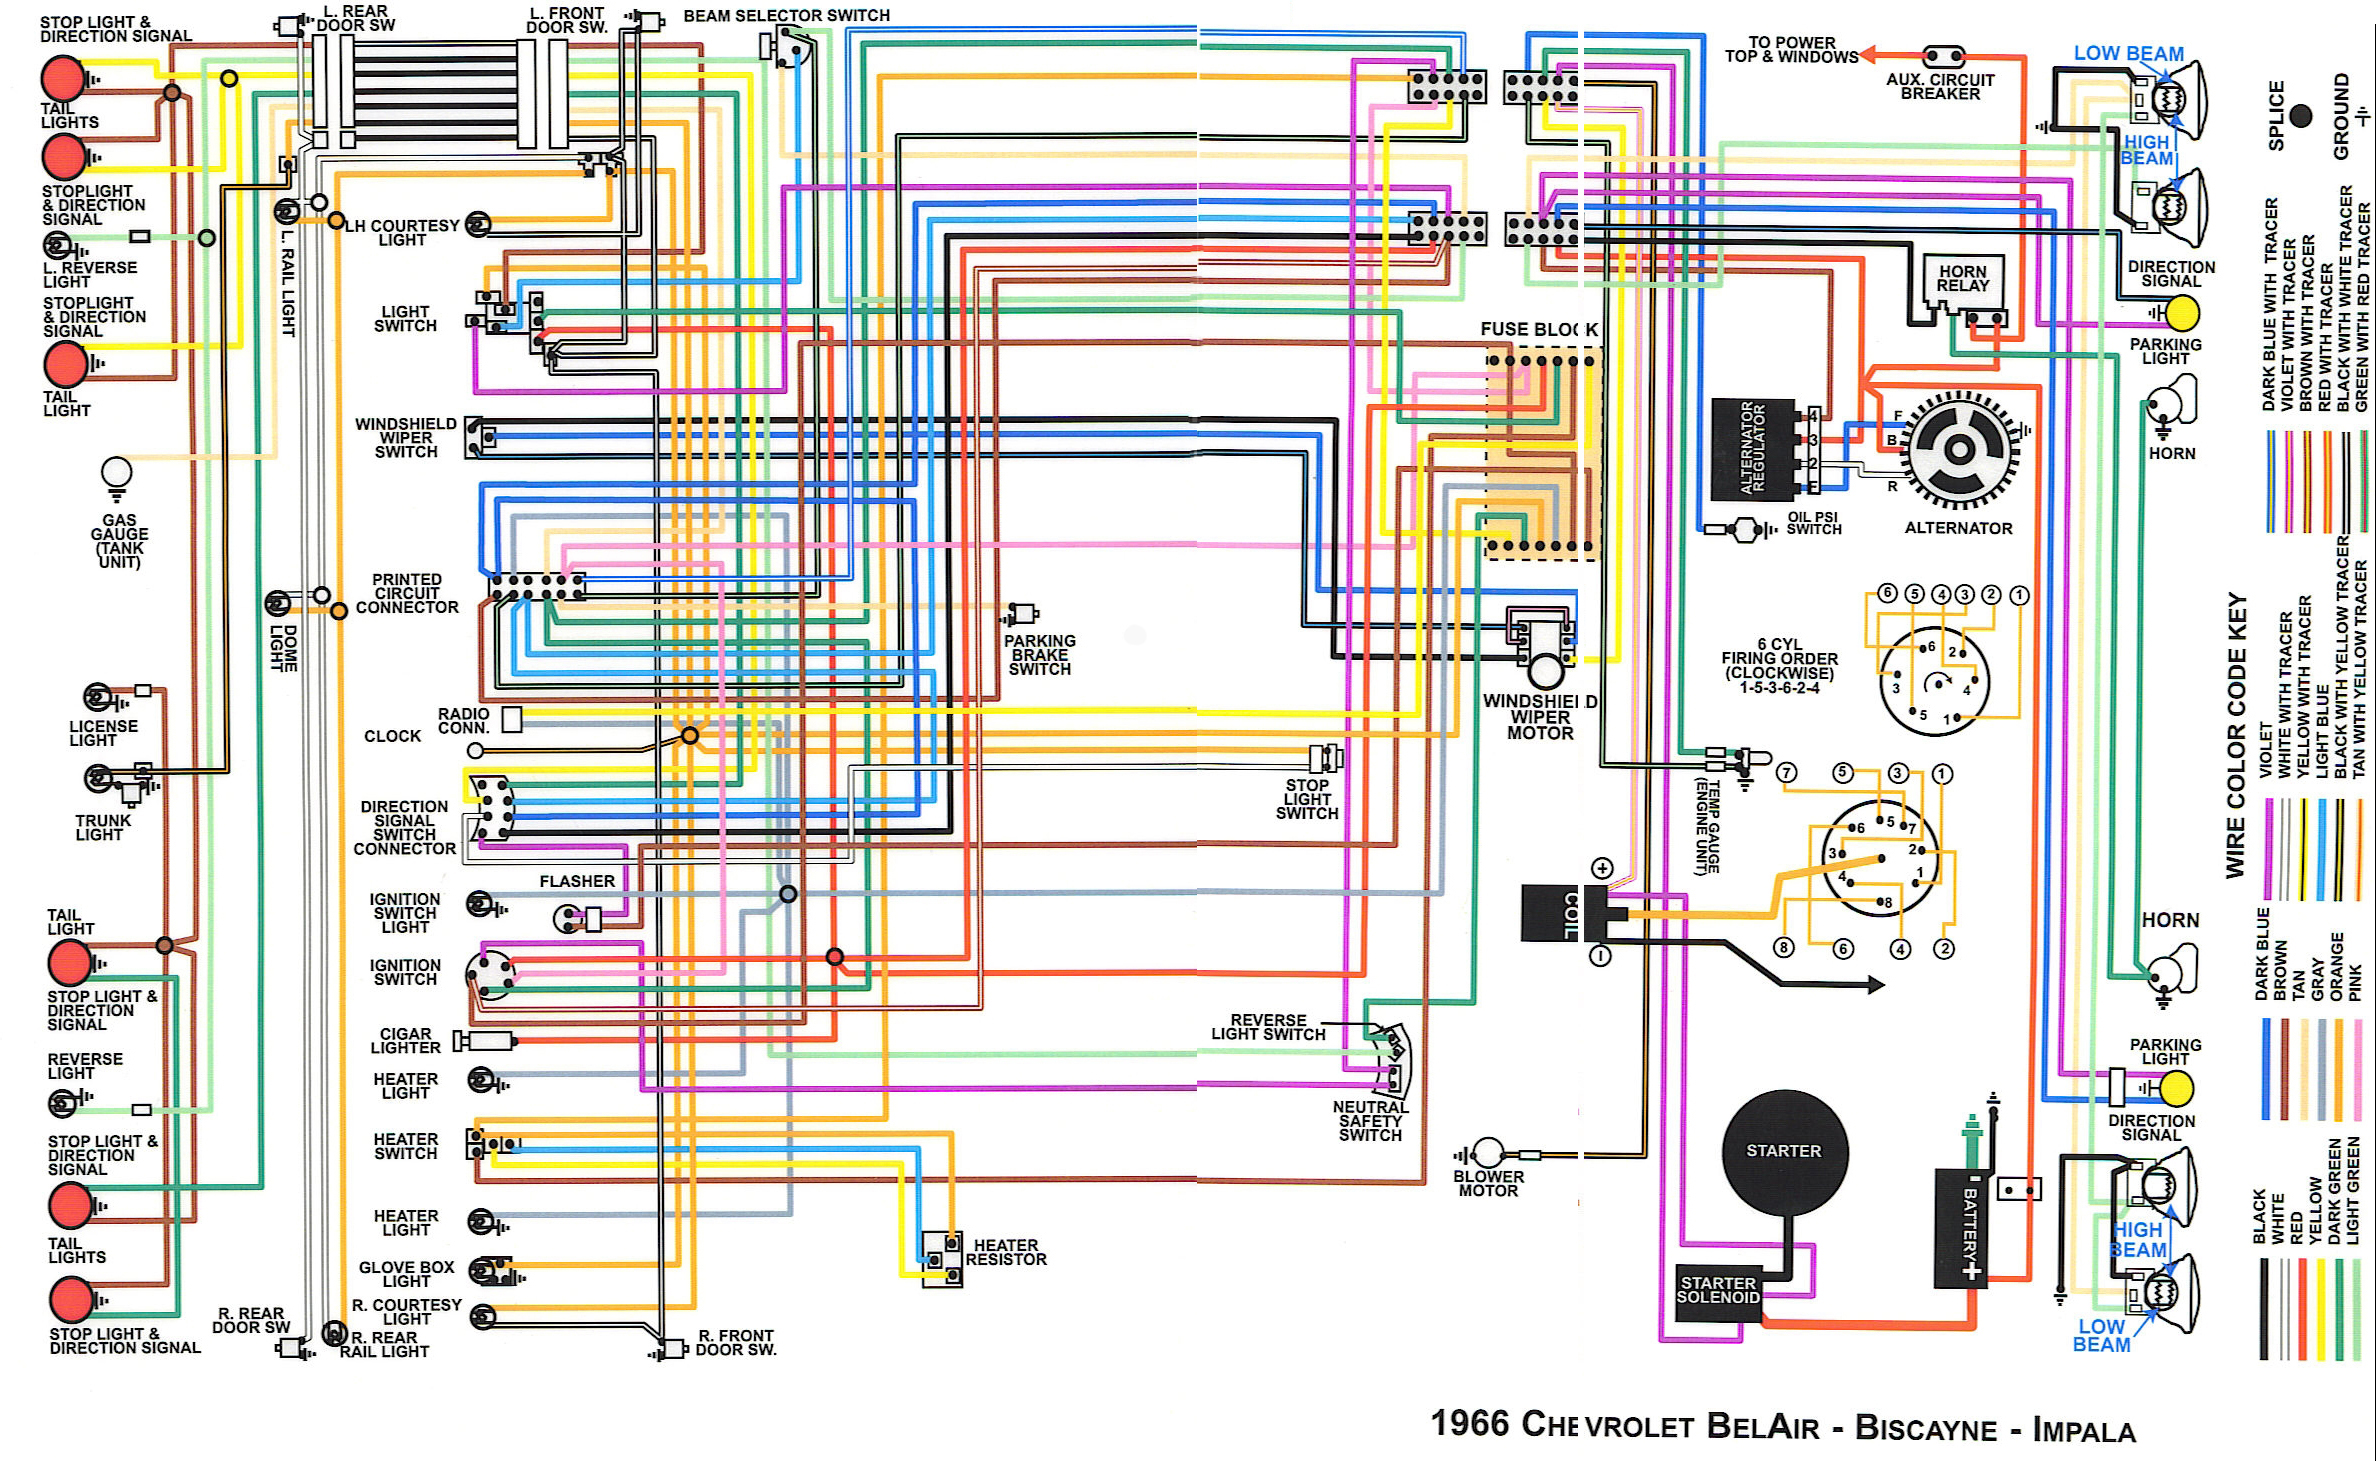 wiring diagram for a 1972 chevy truck yhgfdmuor net also 1966 chevy pickup wiring install 1966 auto wiring diagram schematic, wiring diagram width=